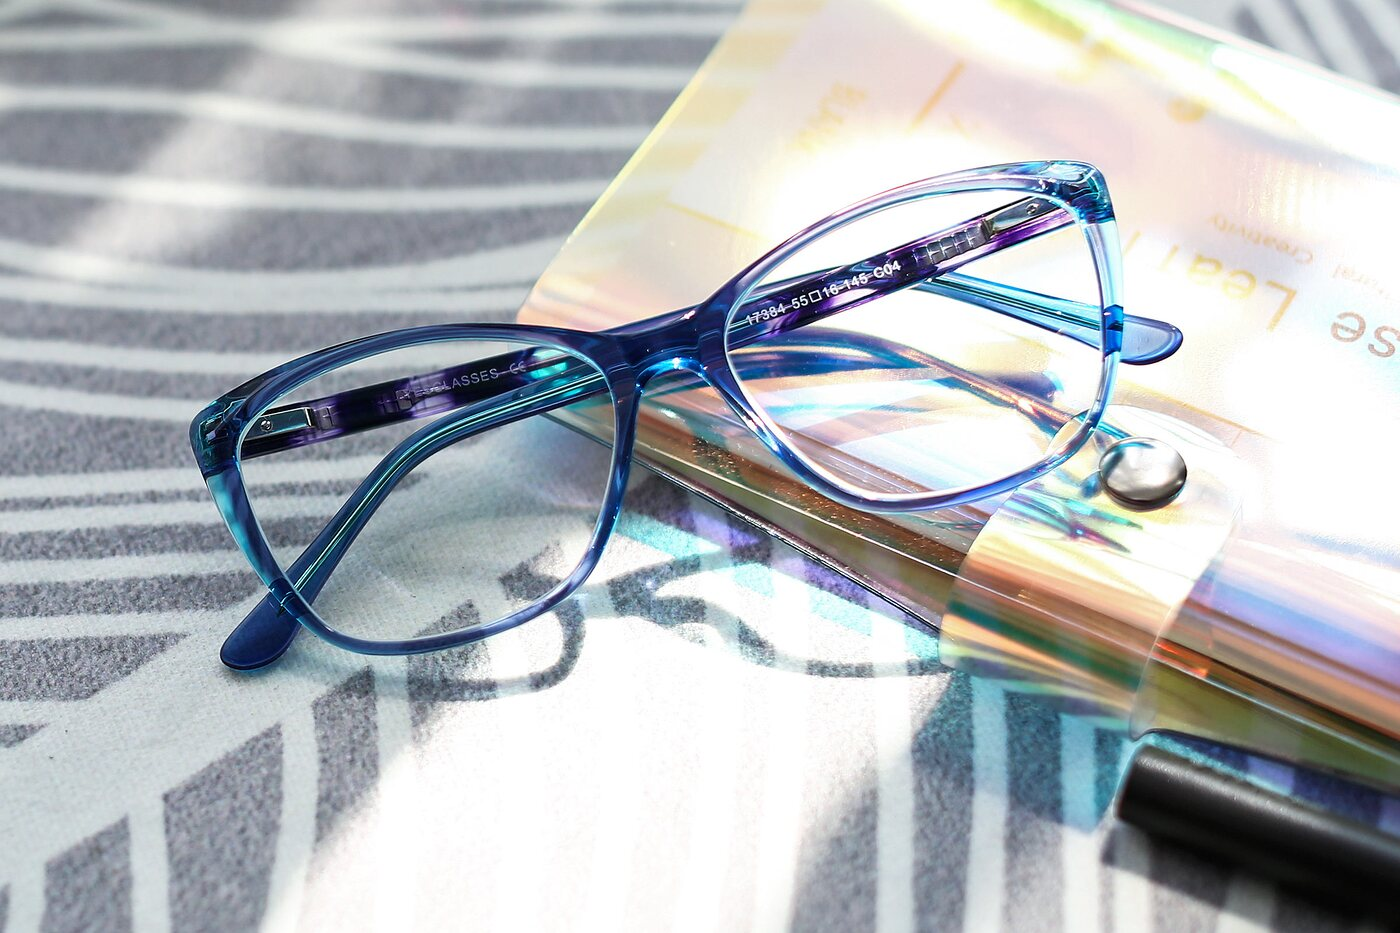 Transparent Blue Geek-Chic Acetate Butterfly Eyeglasses